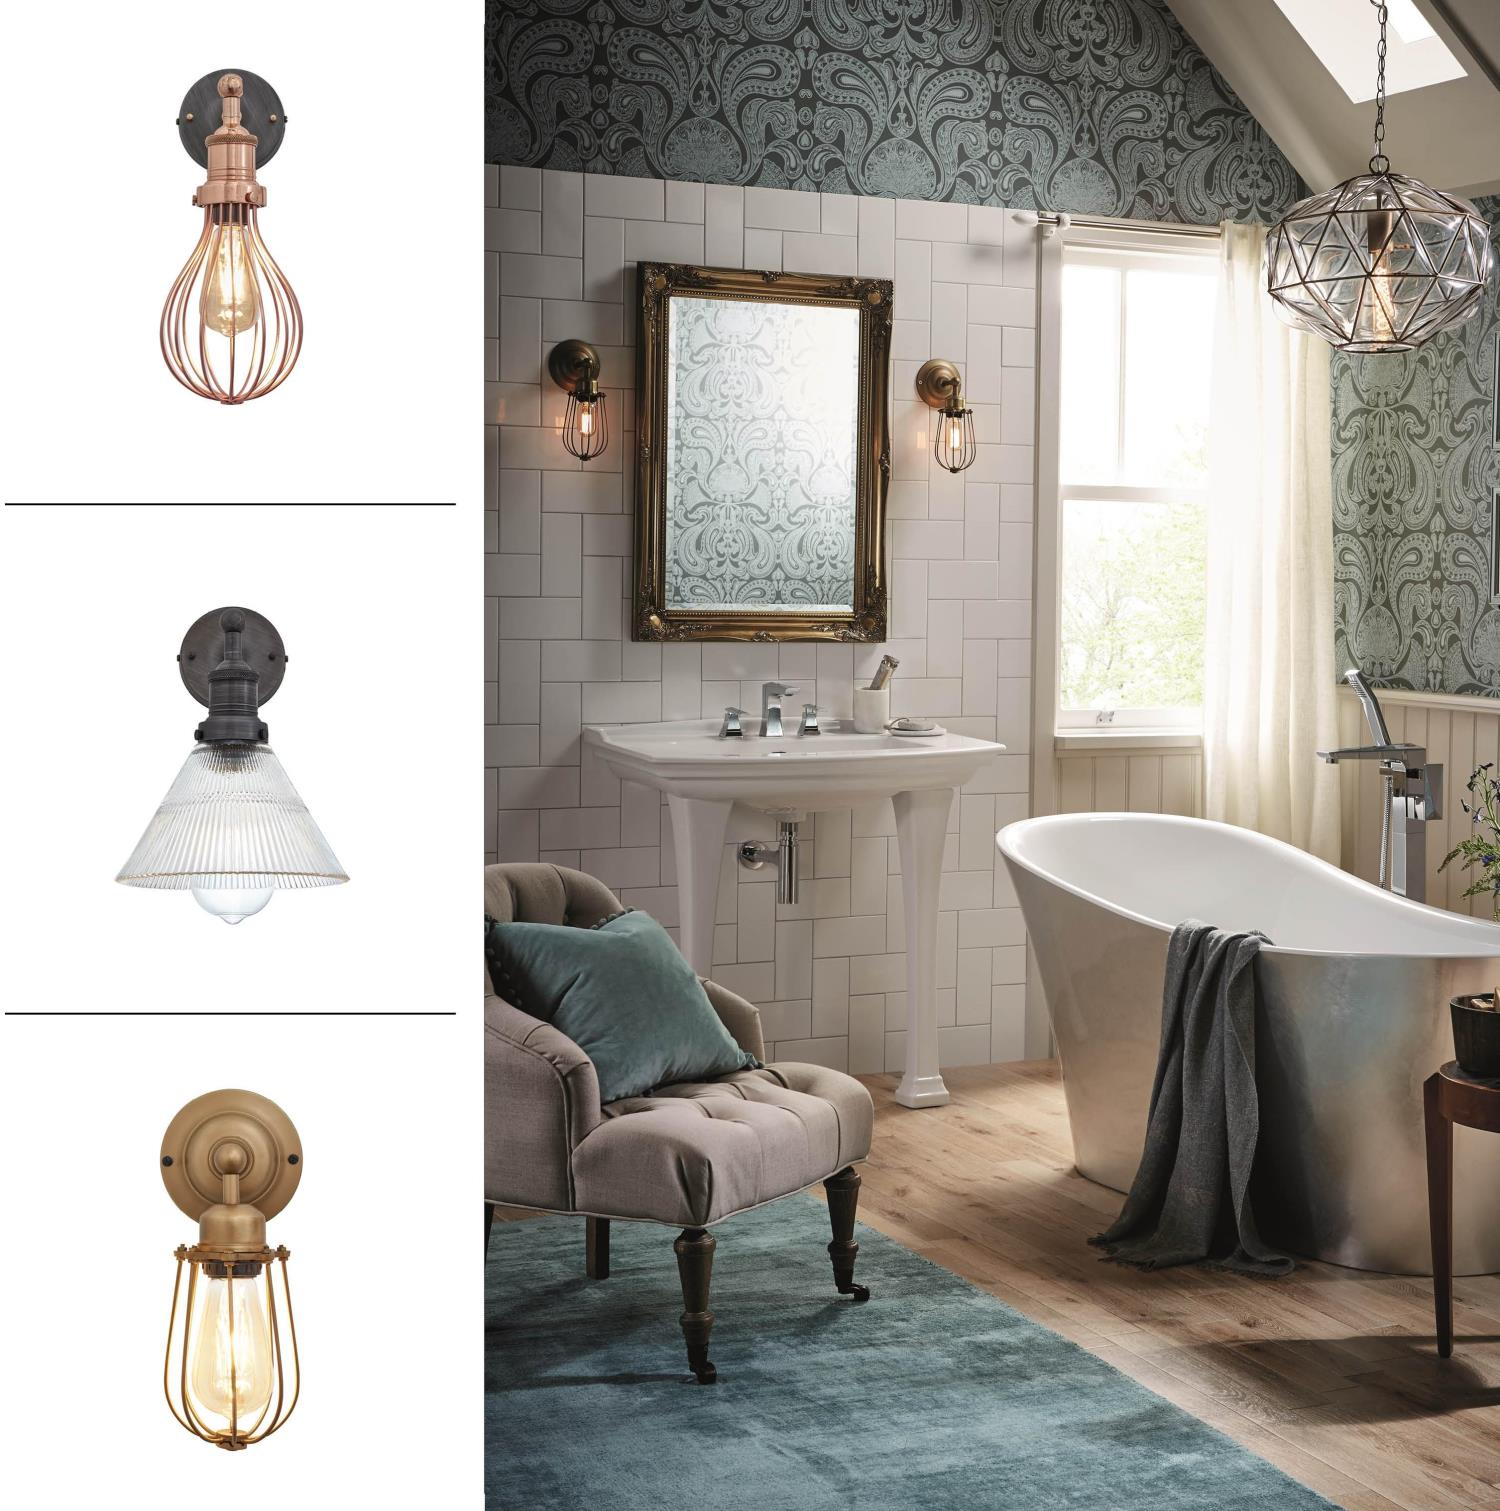 Heritage Bathrooms and Industville bathroom lighting